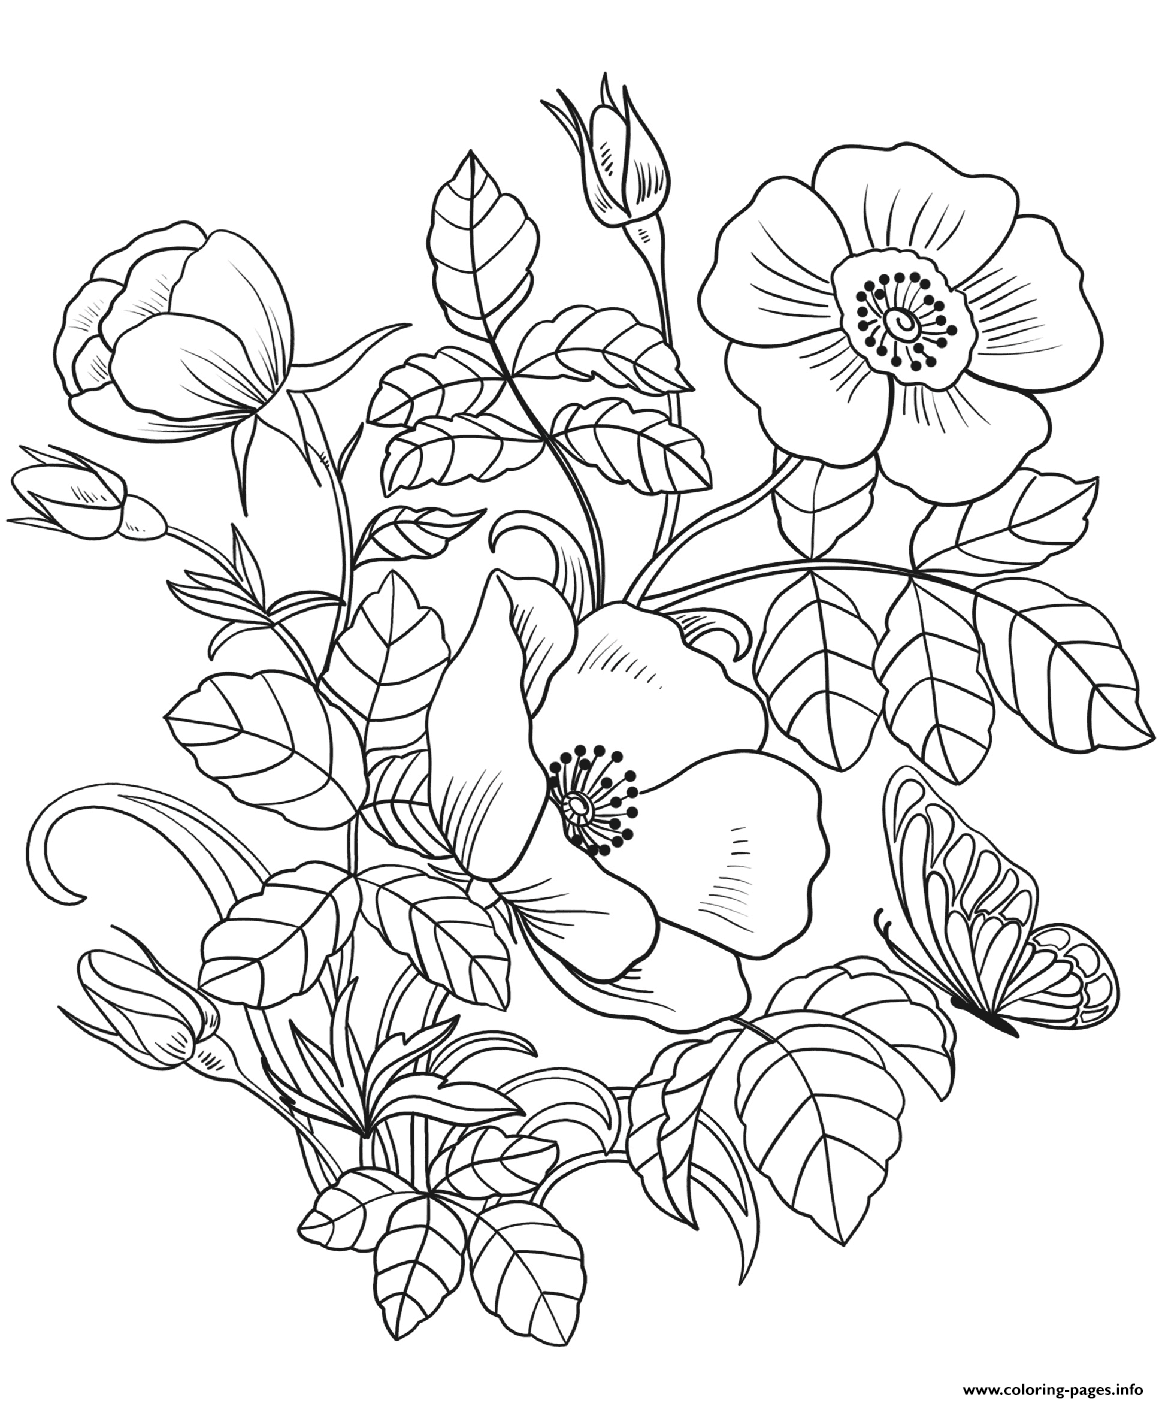 coloring pic of flower flowers to print flowers kids coloring pages of pic coloring flower